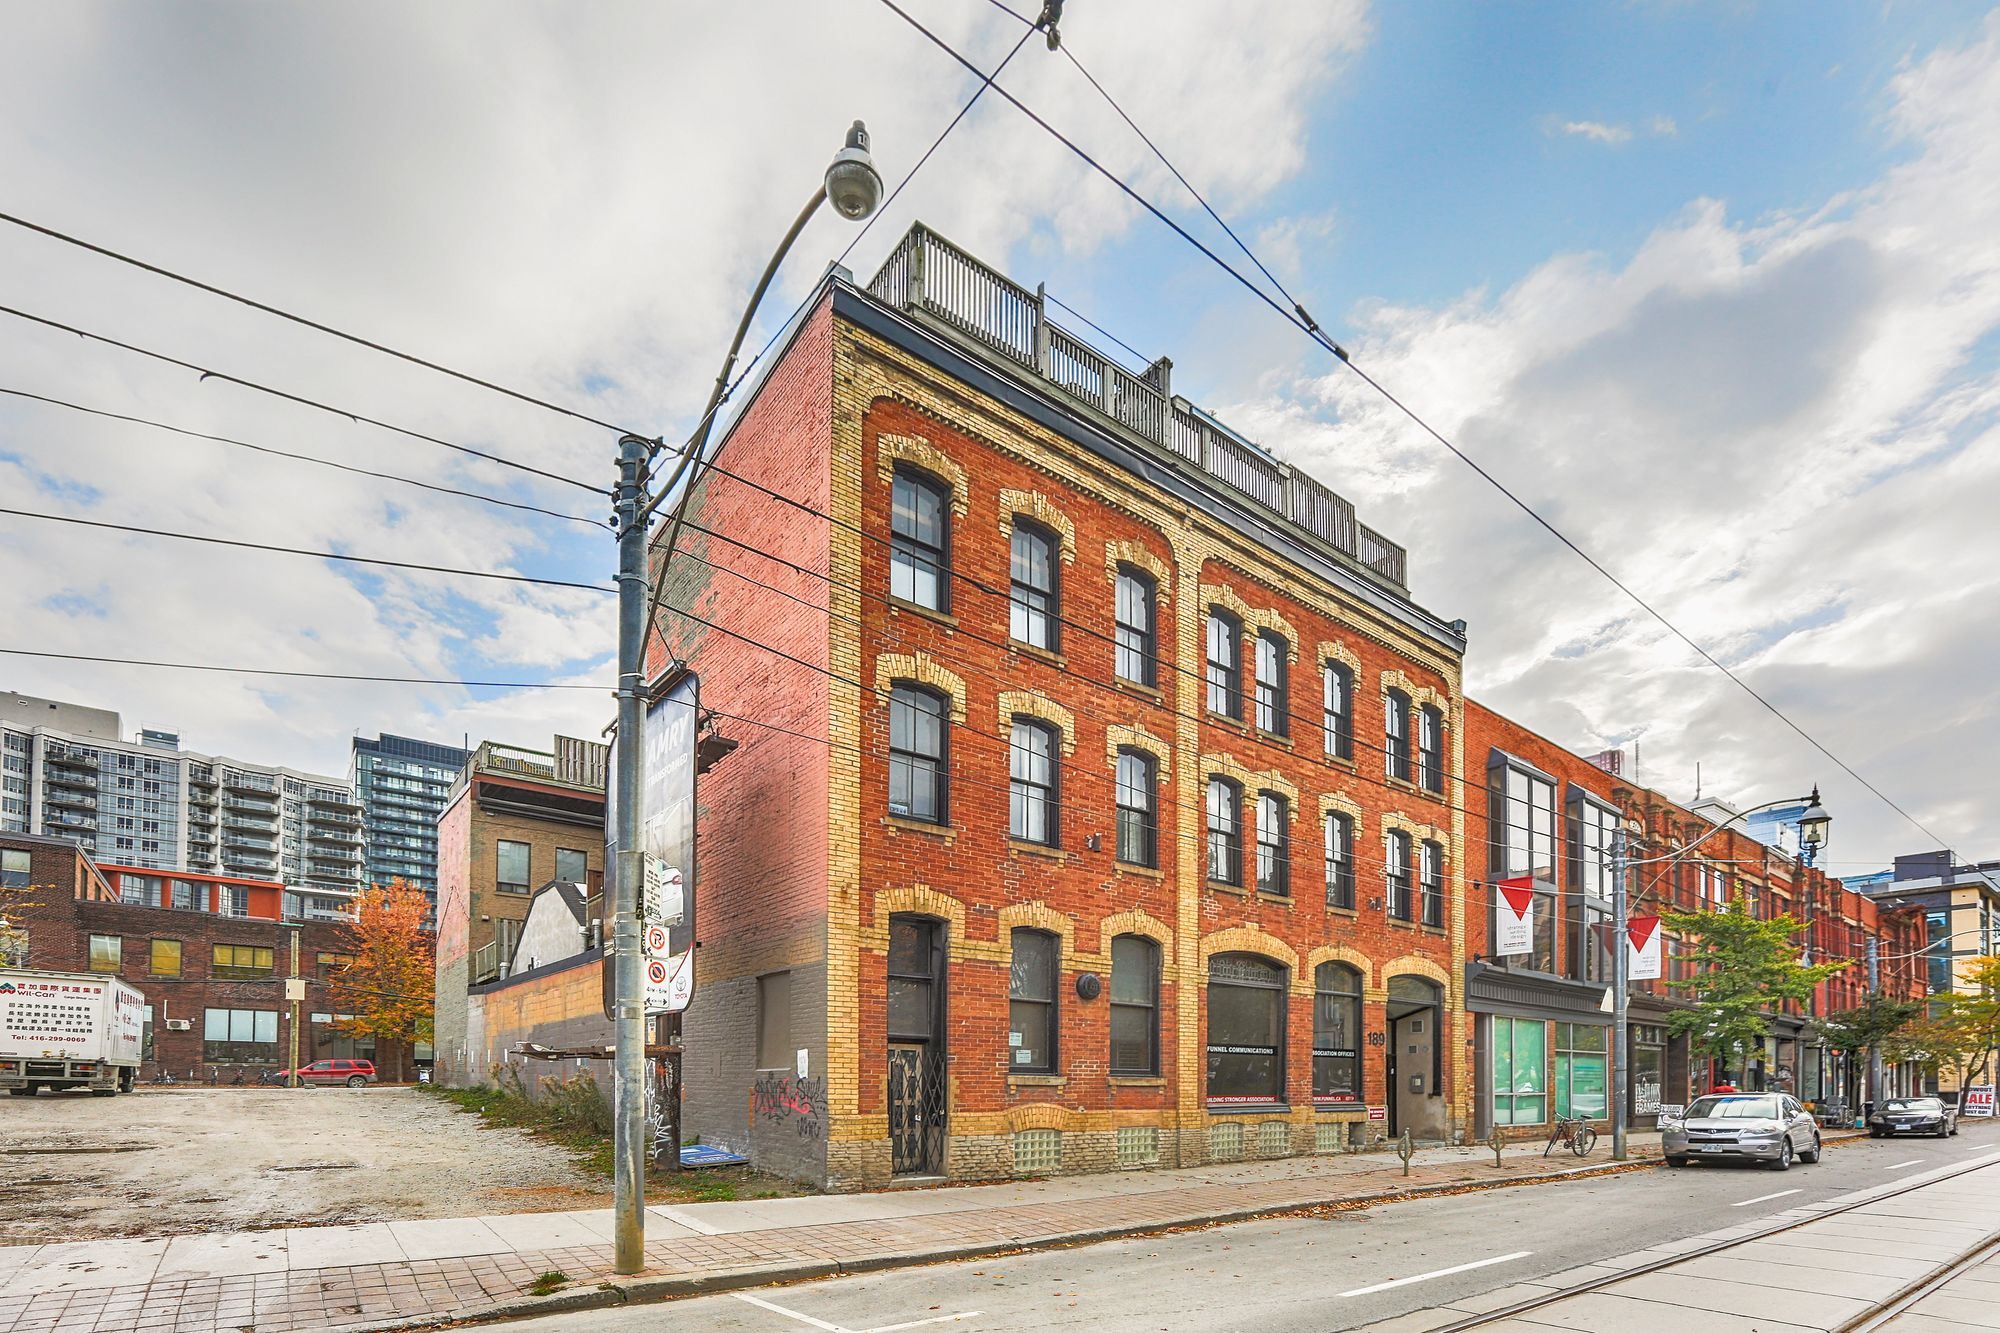 189 Queen St E. This loft at Boiler Factory Lofts is located in  Downtown, Toronto - image #1 of 4 by Strata.ca